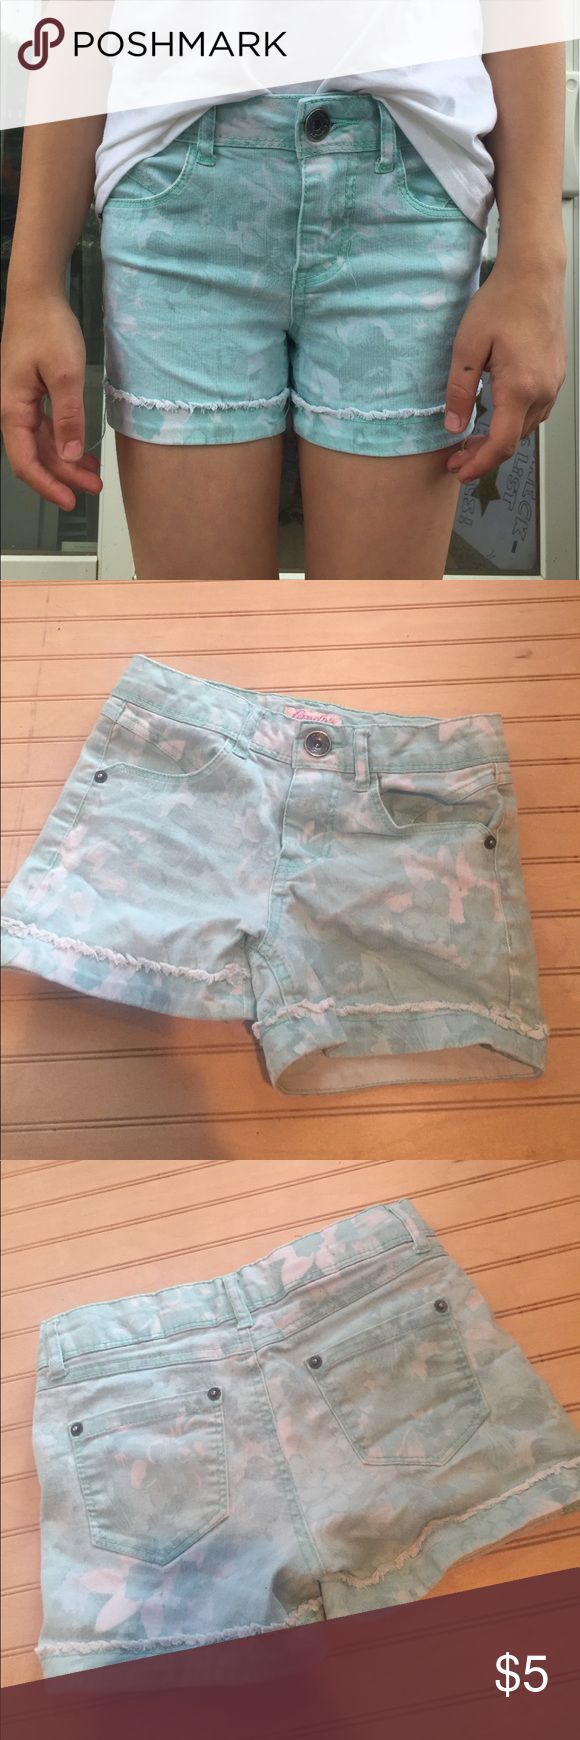 Candie's Girls Aqua Shorts Size 10, in great condition, no stains or tears Candie's Bottoms Shorts